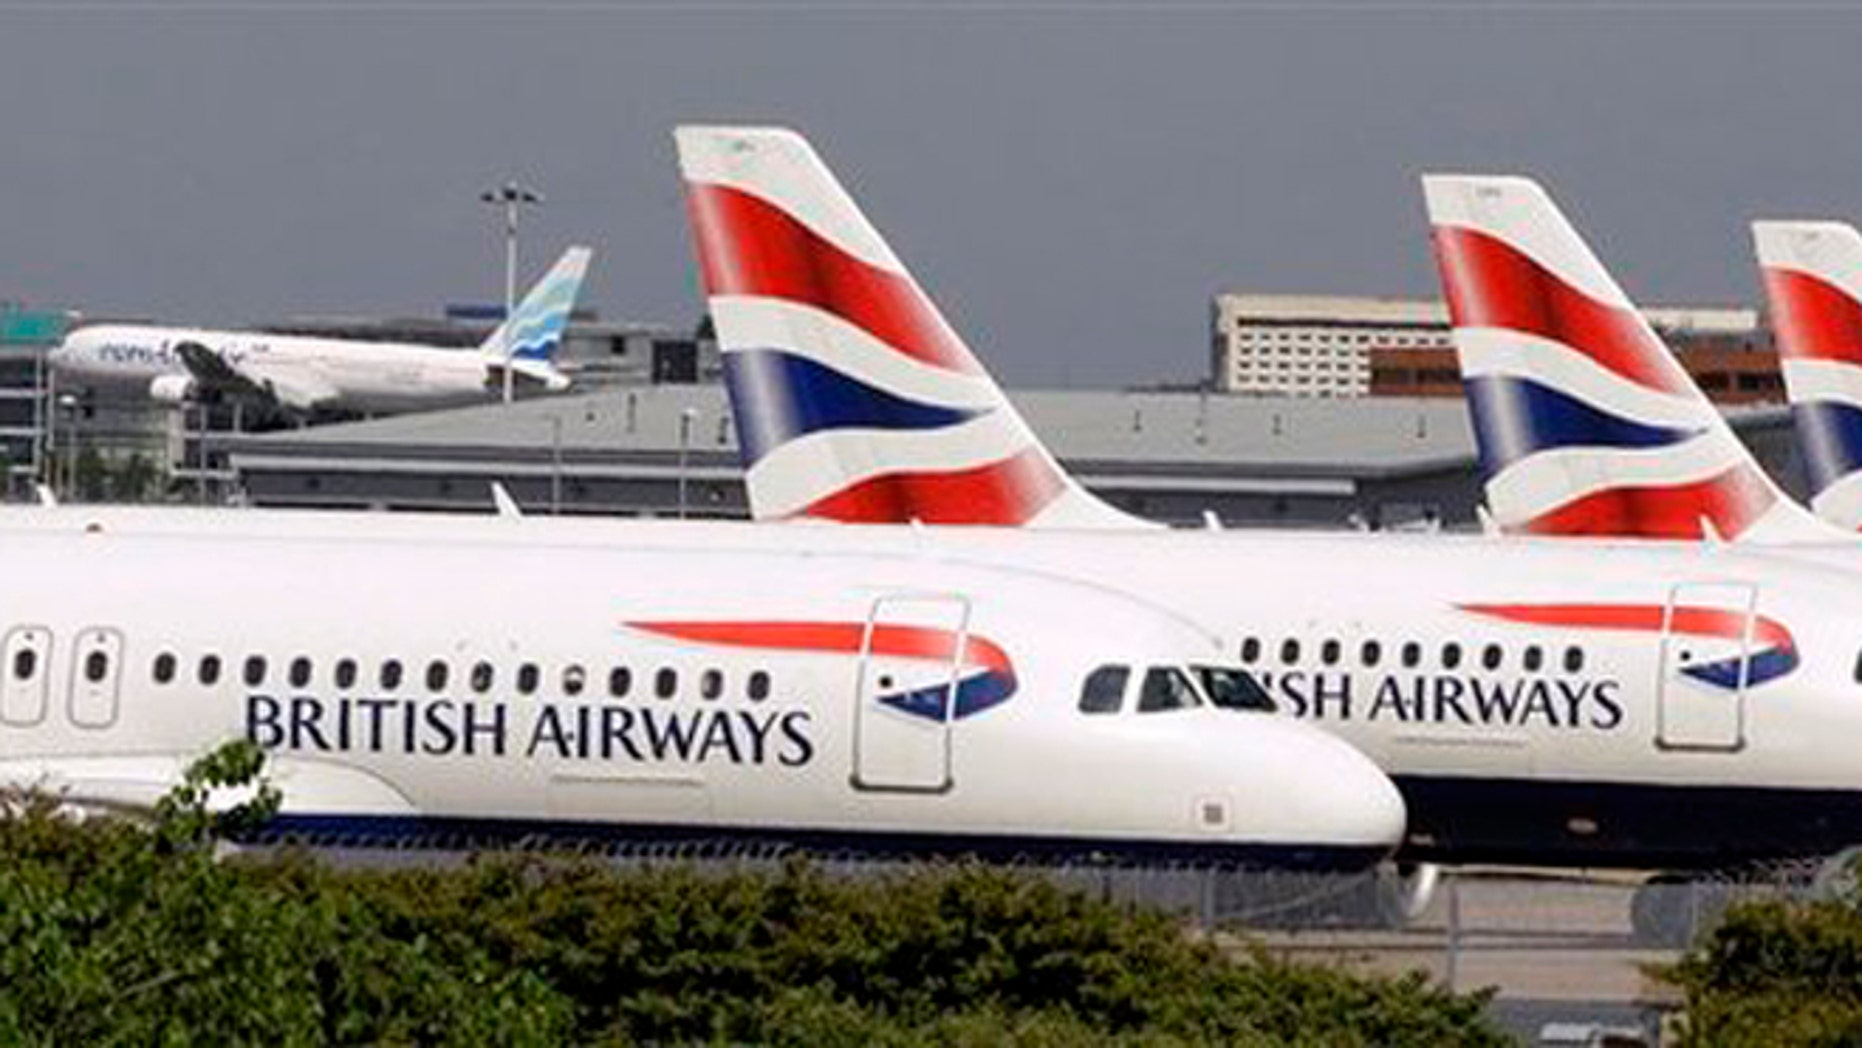 British Airways planes parked at Heathrow Airport in London.